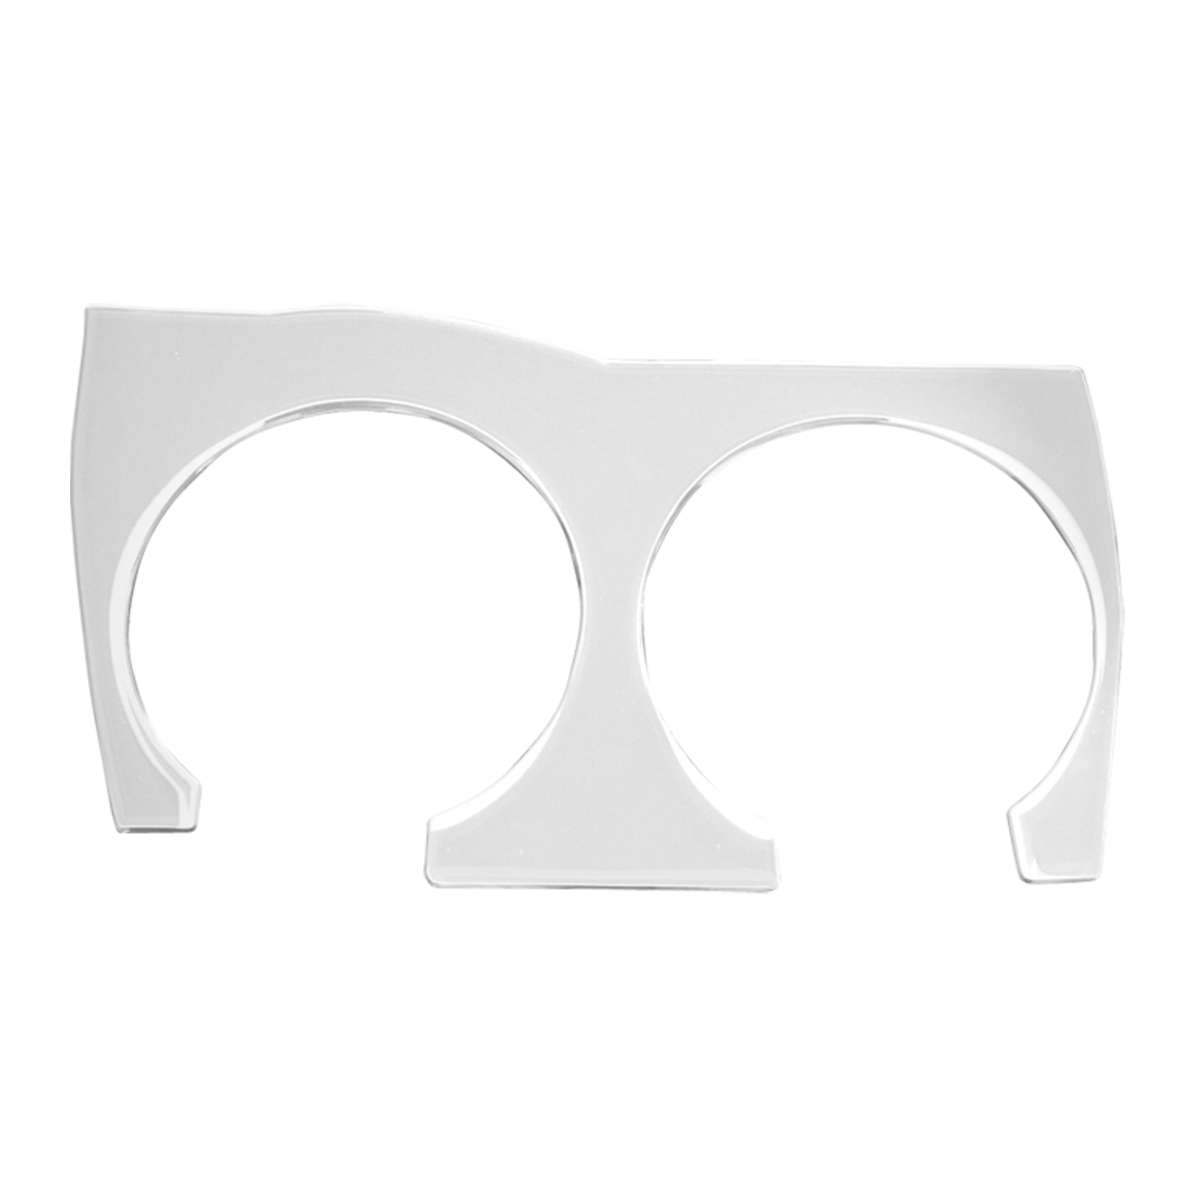 68918 Cup Holder Trim for Kenworth W & T